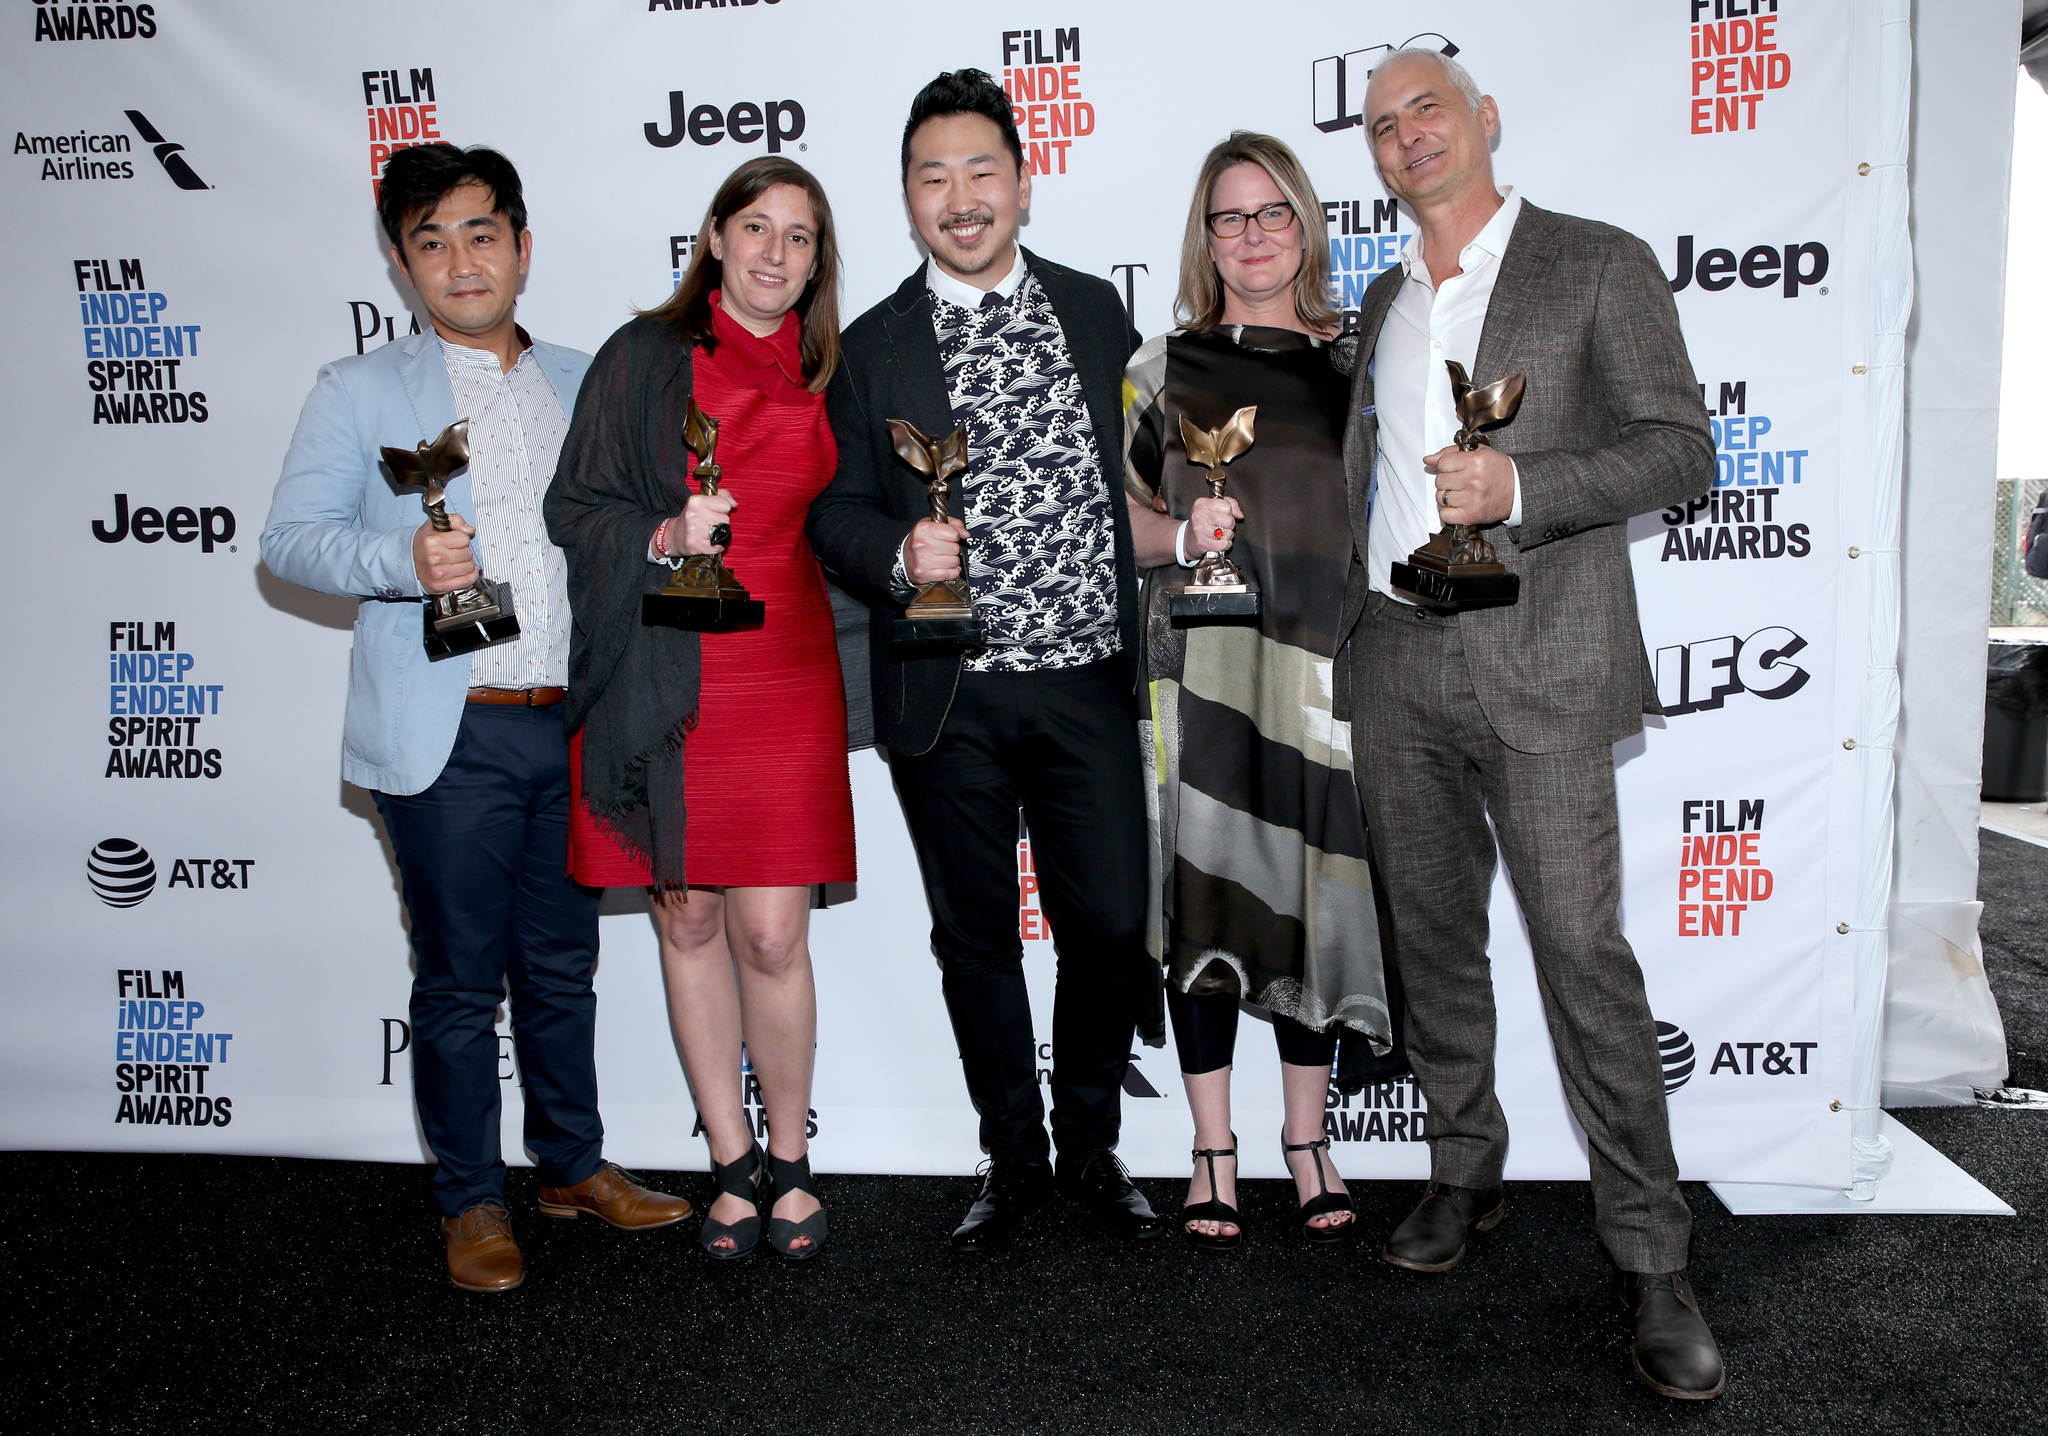 David Ariniello, Kelly Thomas, Jin Kim, Ki Jin Kim, Andrew Ahn, and Giulia Caruso at an event for 32nd Film Independent Spirit Awards (2017)